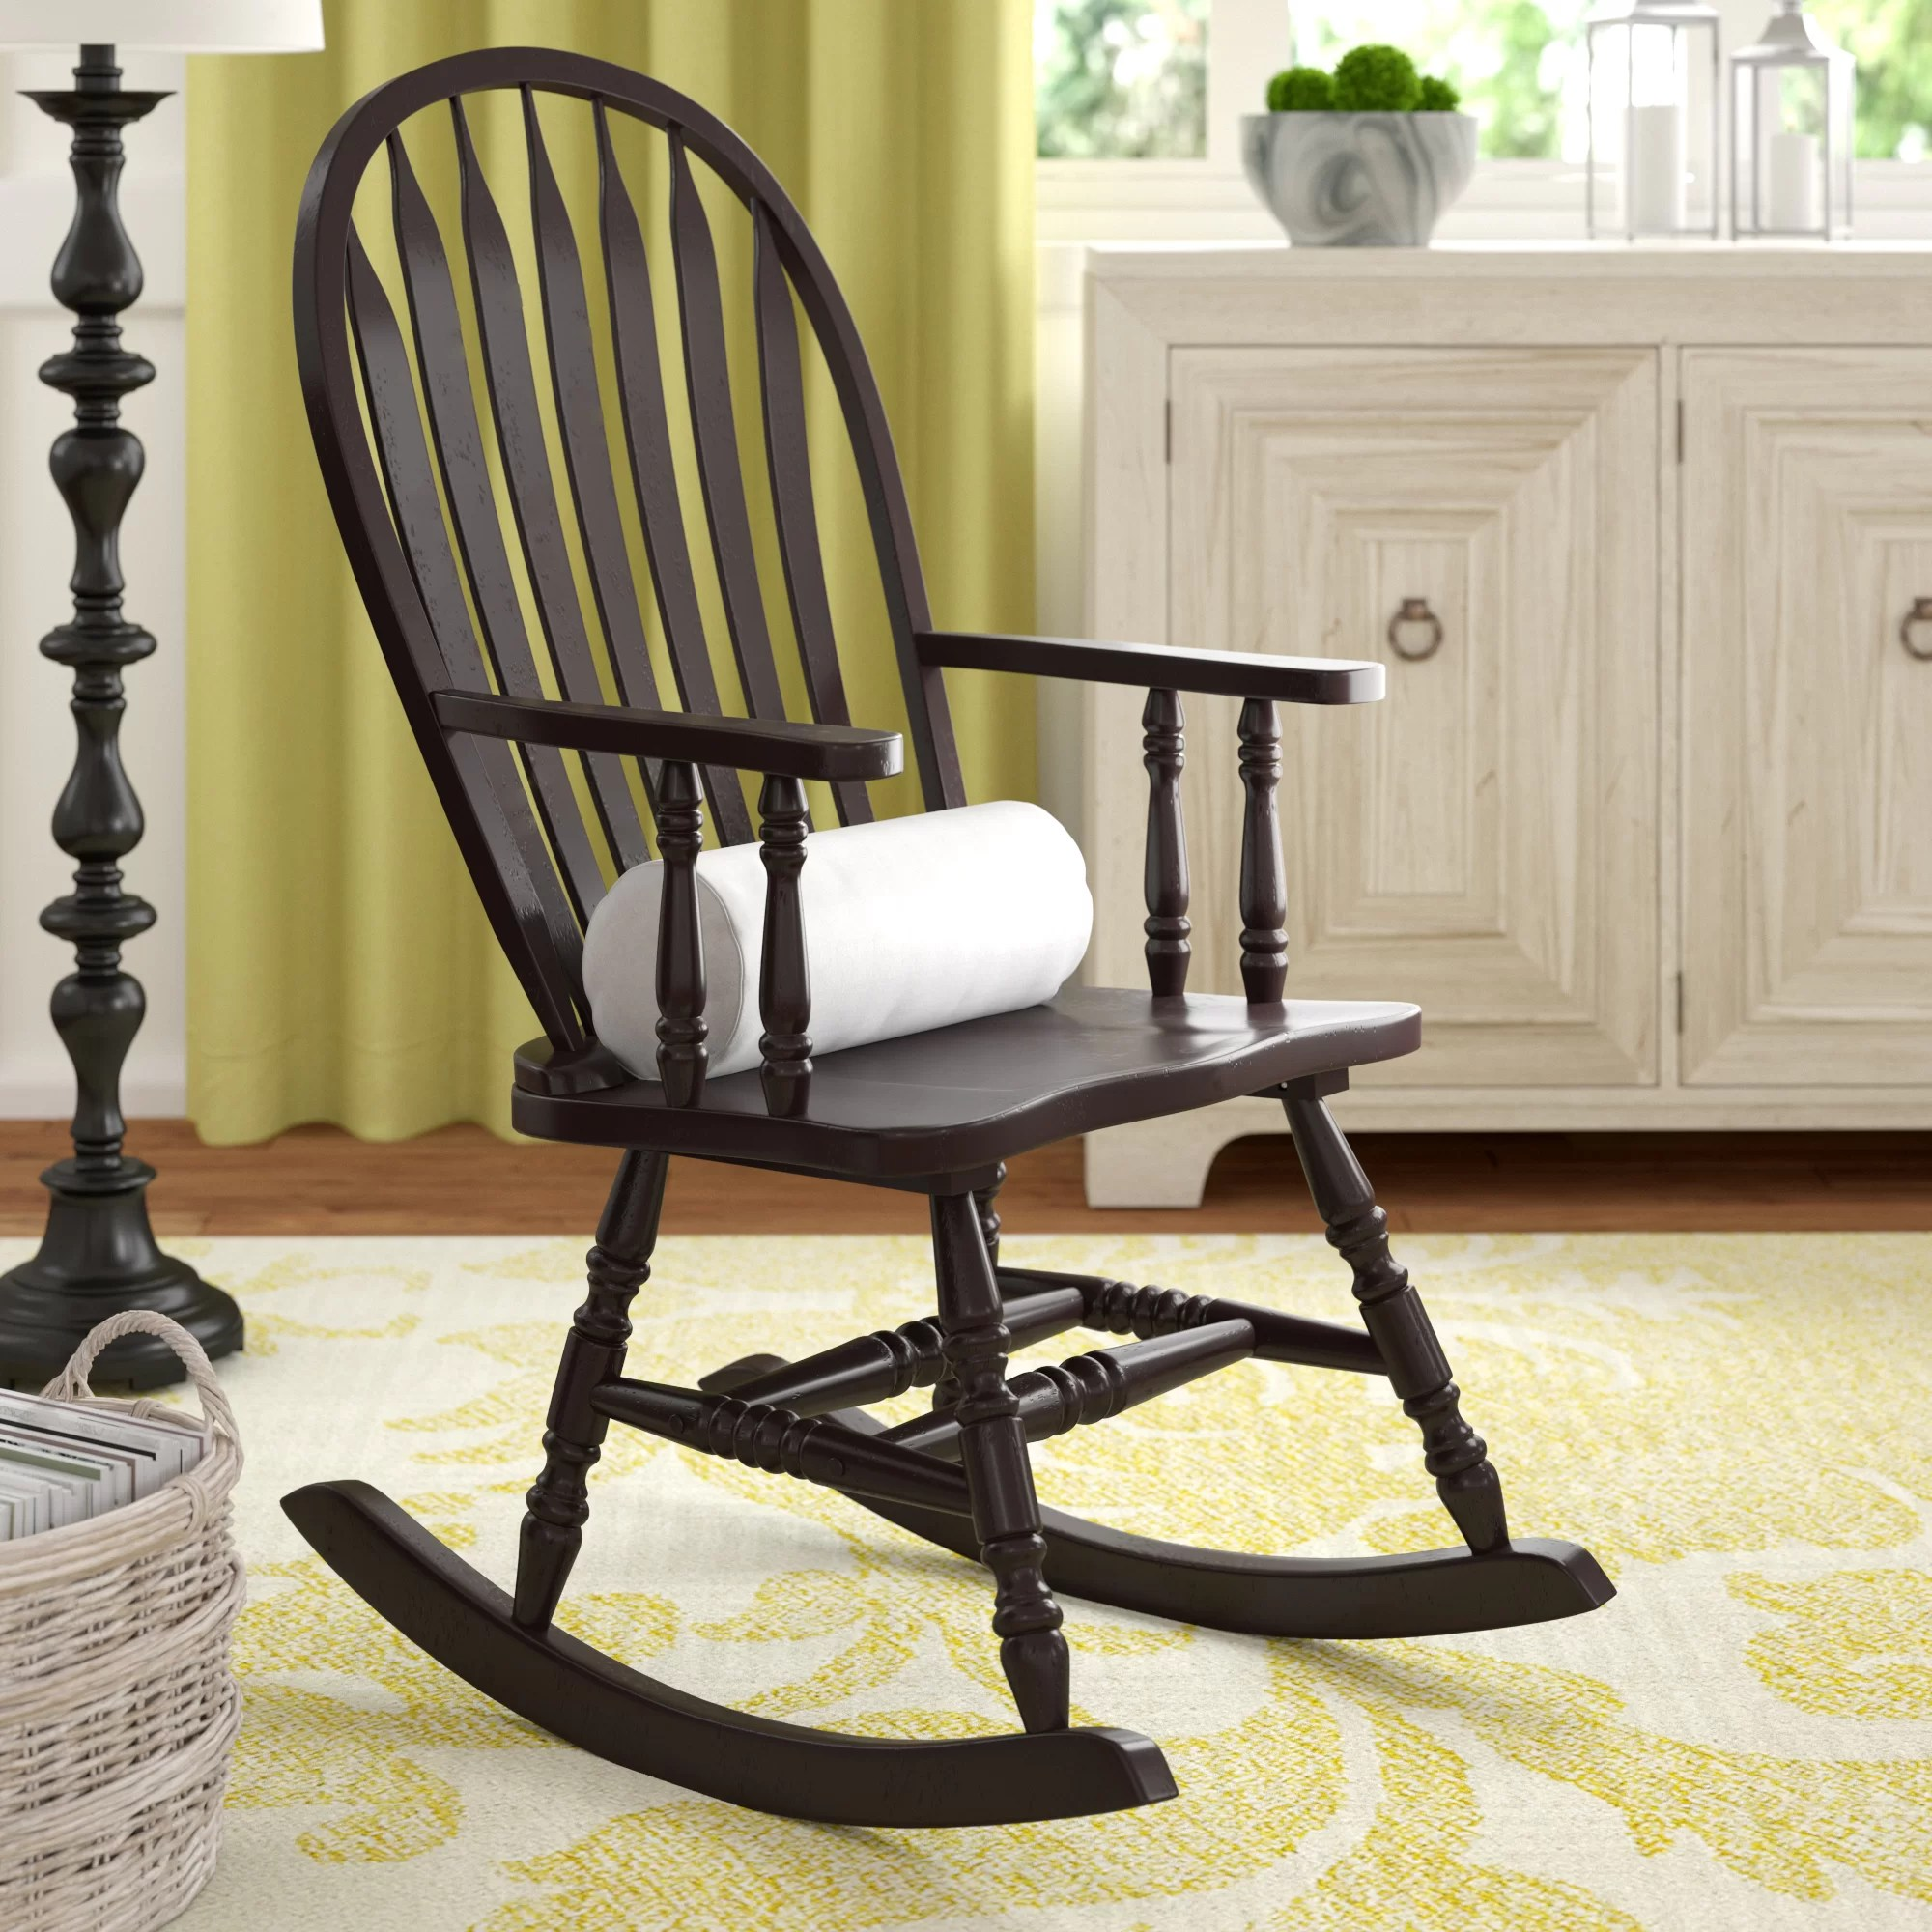 chair with arms 2 seater lawn darby home co silverman rocking reviews wayfair